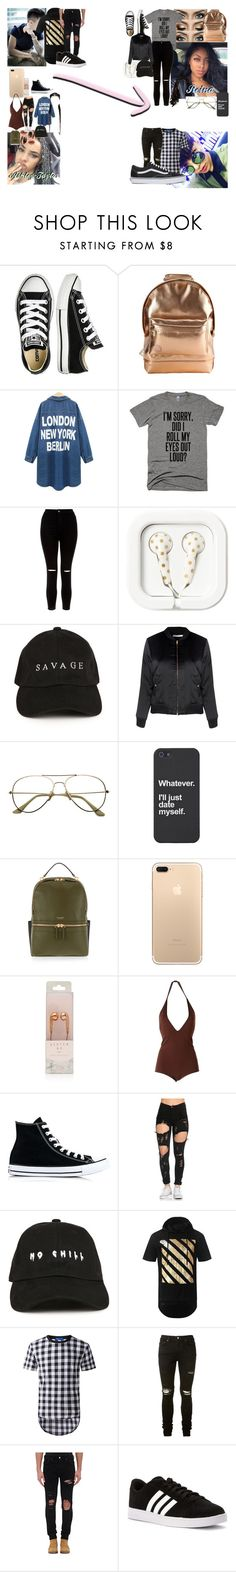 """""""No one But You"""" by teylorann on Polyvore featuring Converse, Mi-Pac, New Look, Glamorous, Henri Bendel, Make, Givenchy, AMIRI, adidas and Vans"""